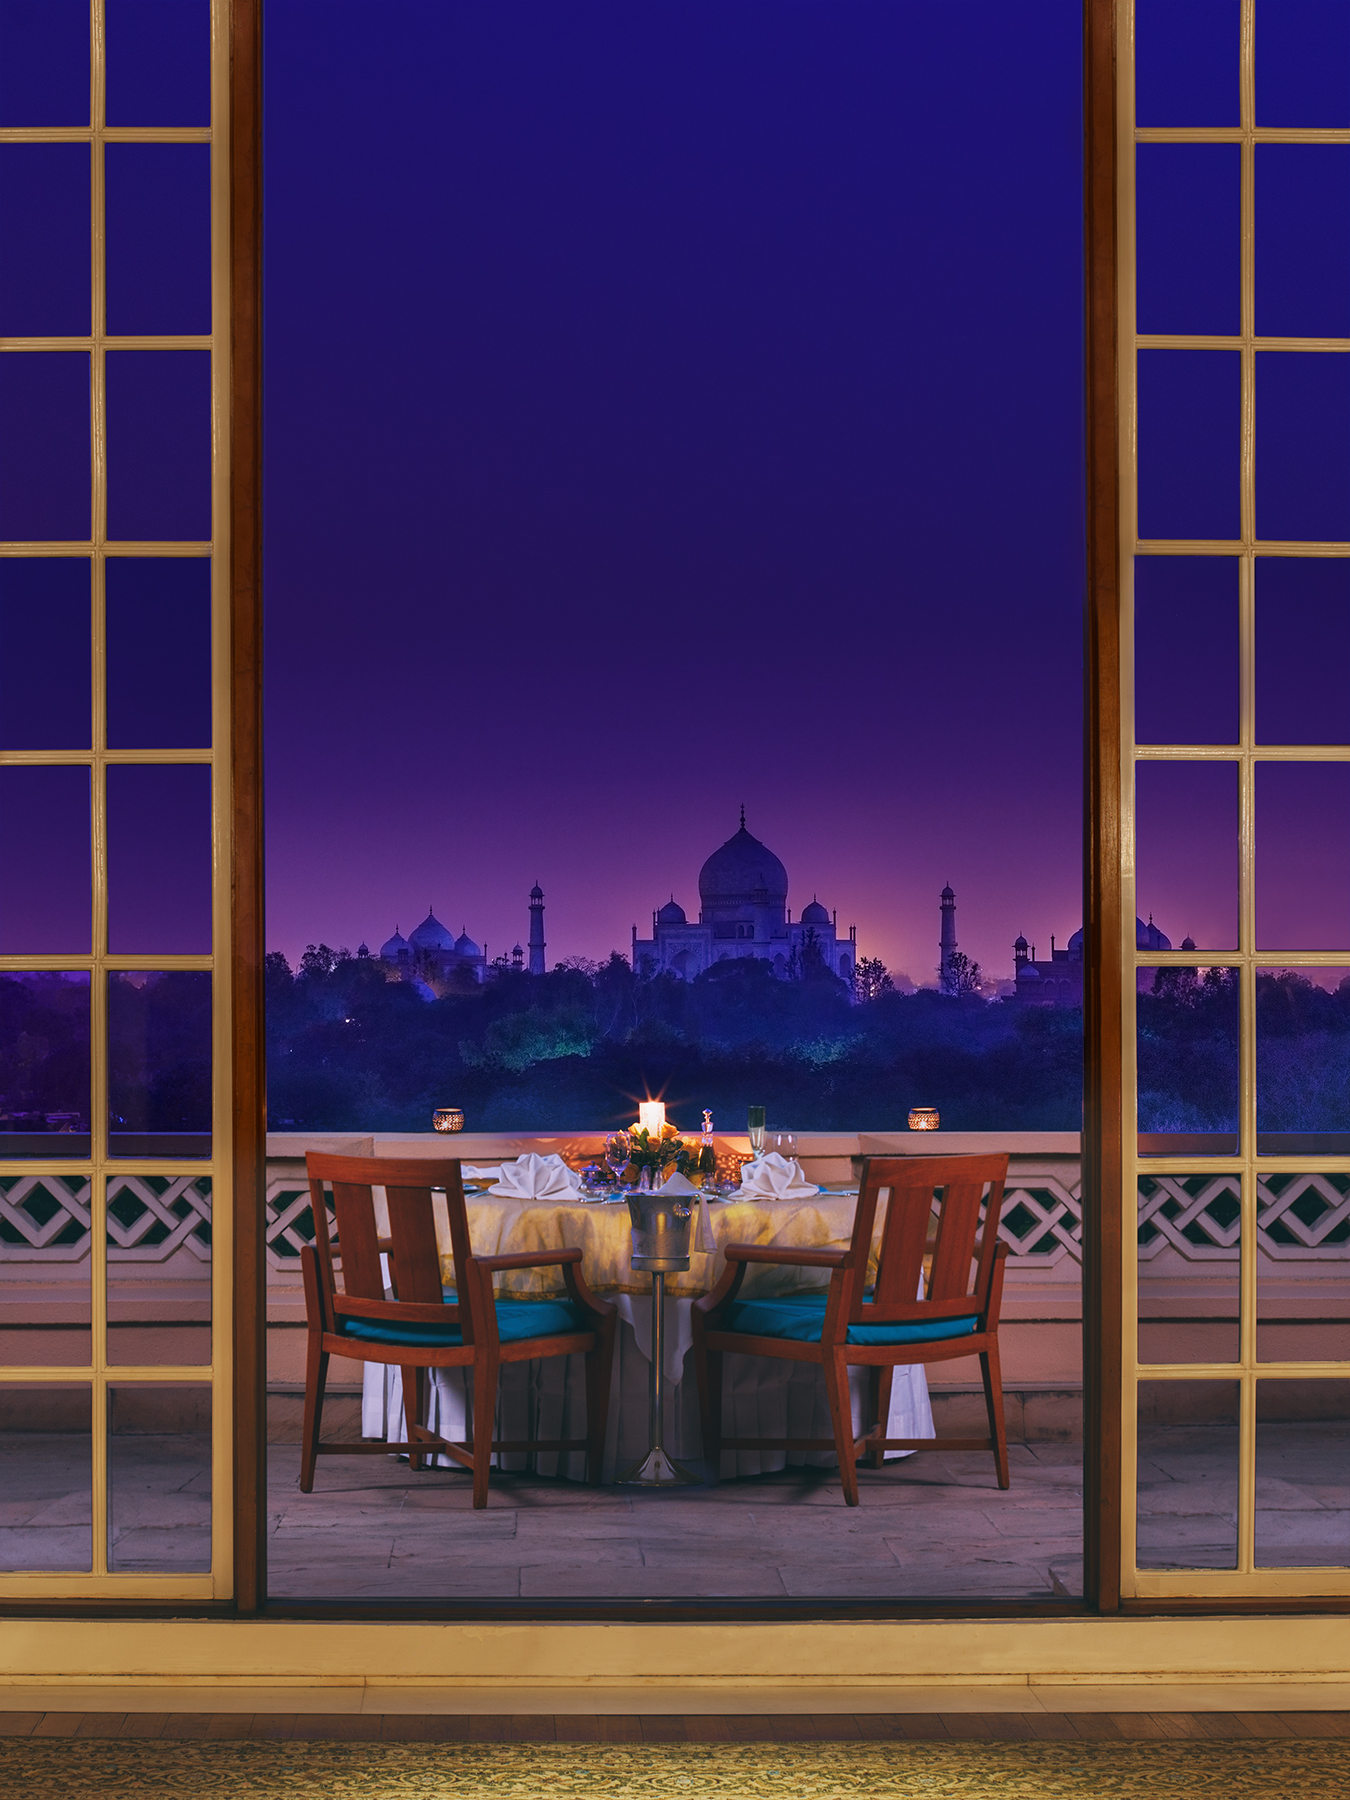 The view from Oberoi Amarvilas in Agra, India